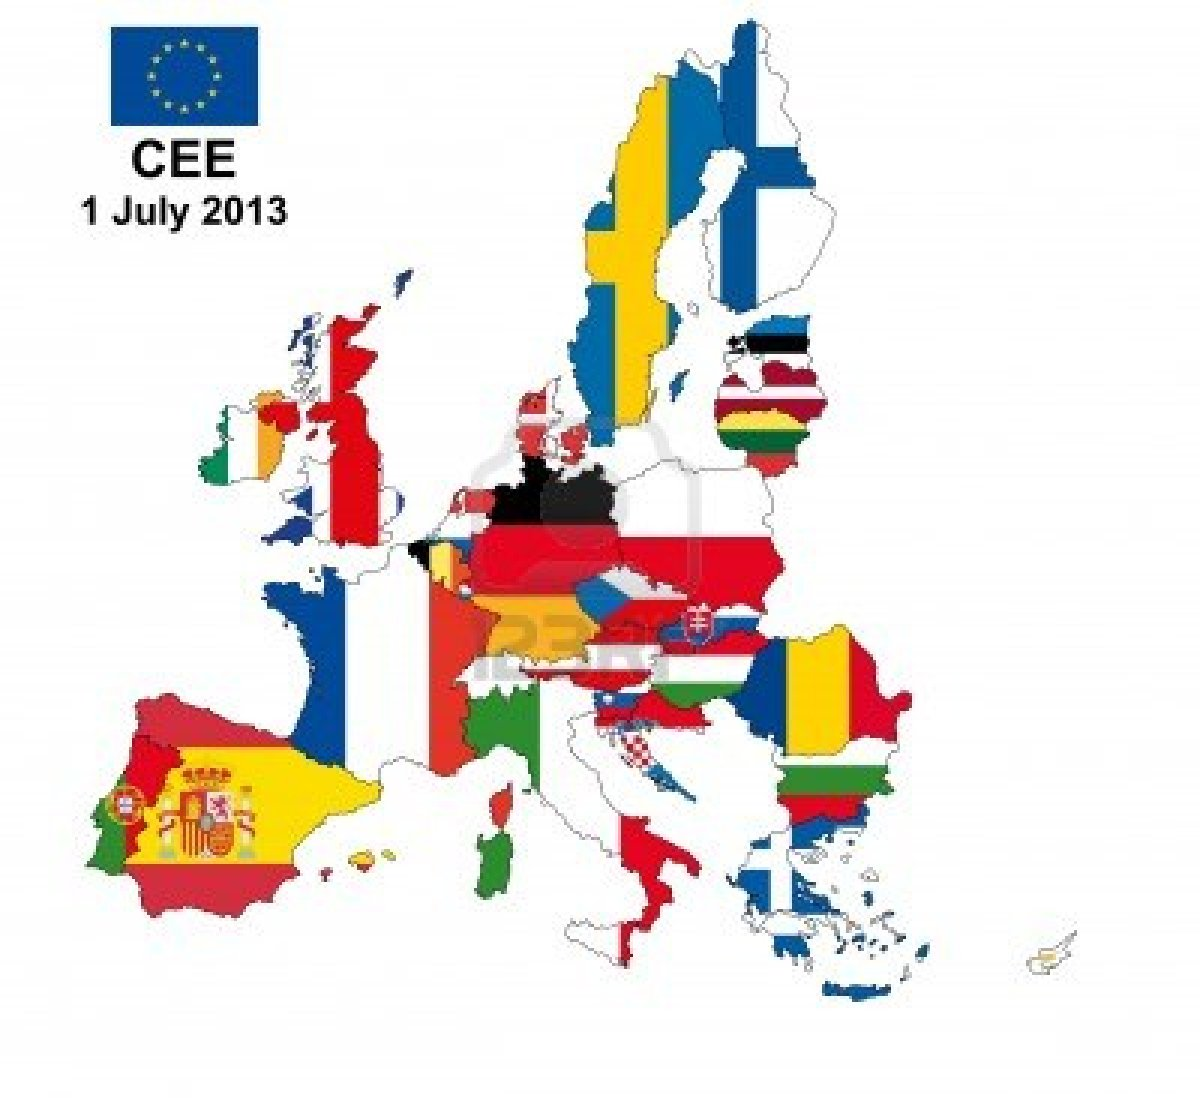 13066717-illustration-of-european-union-map-with-flags-from-1-july-2013